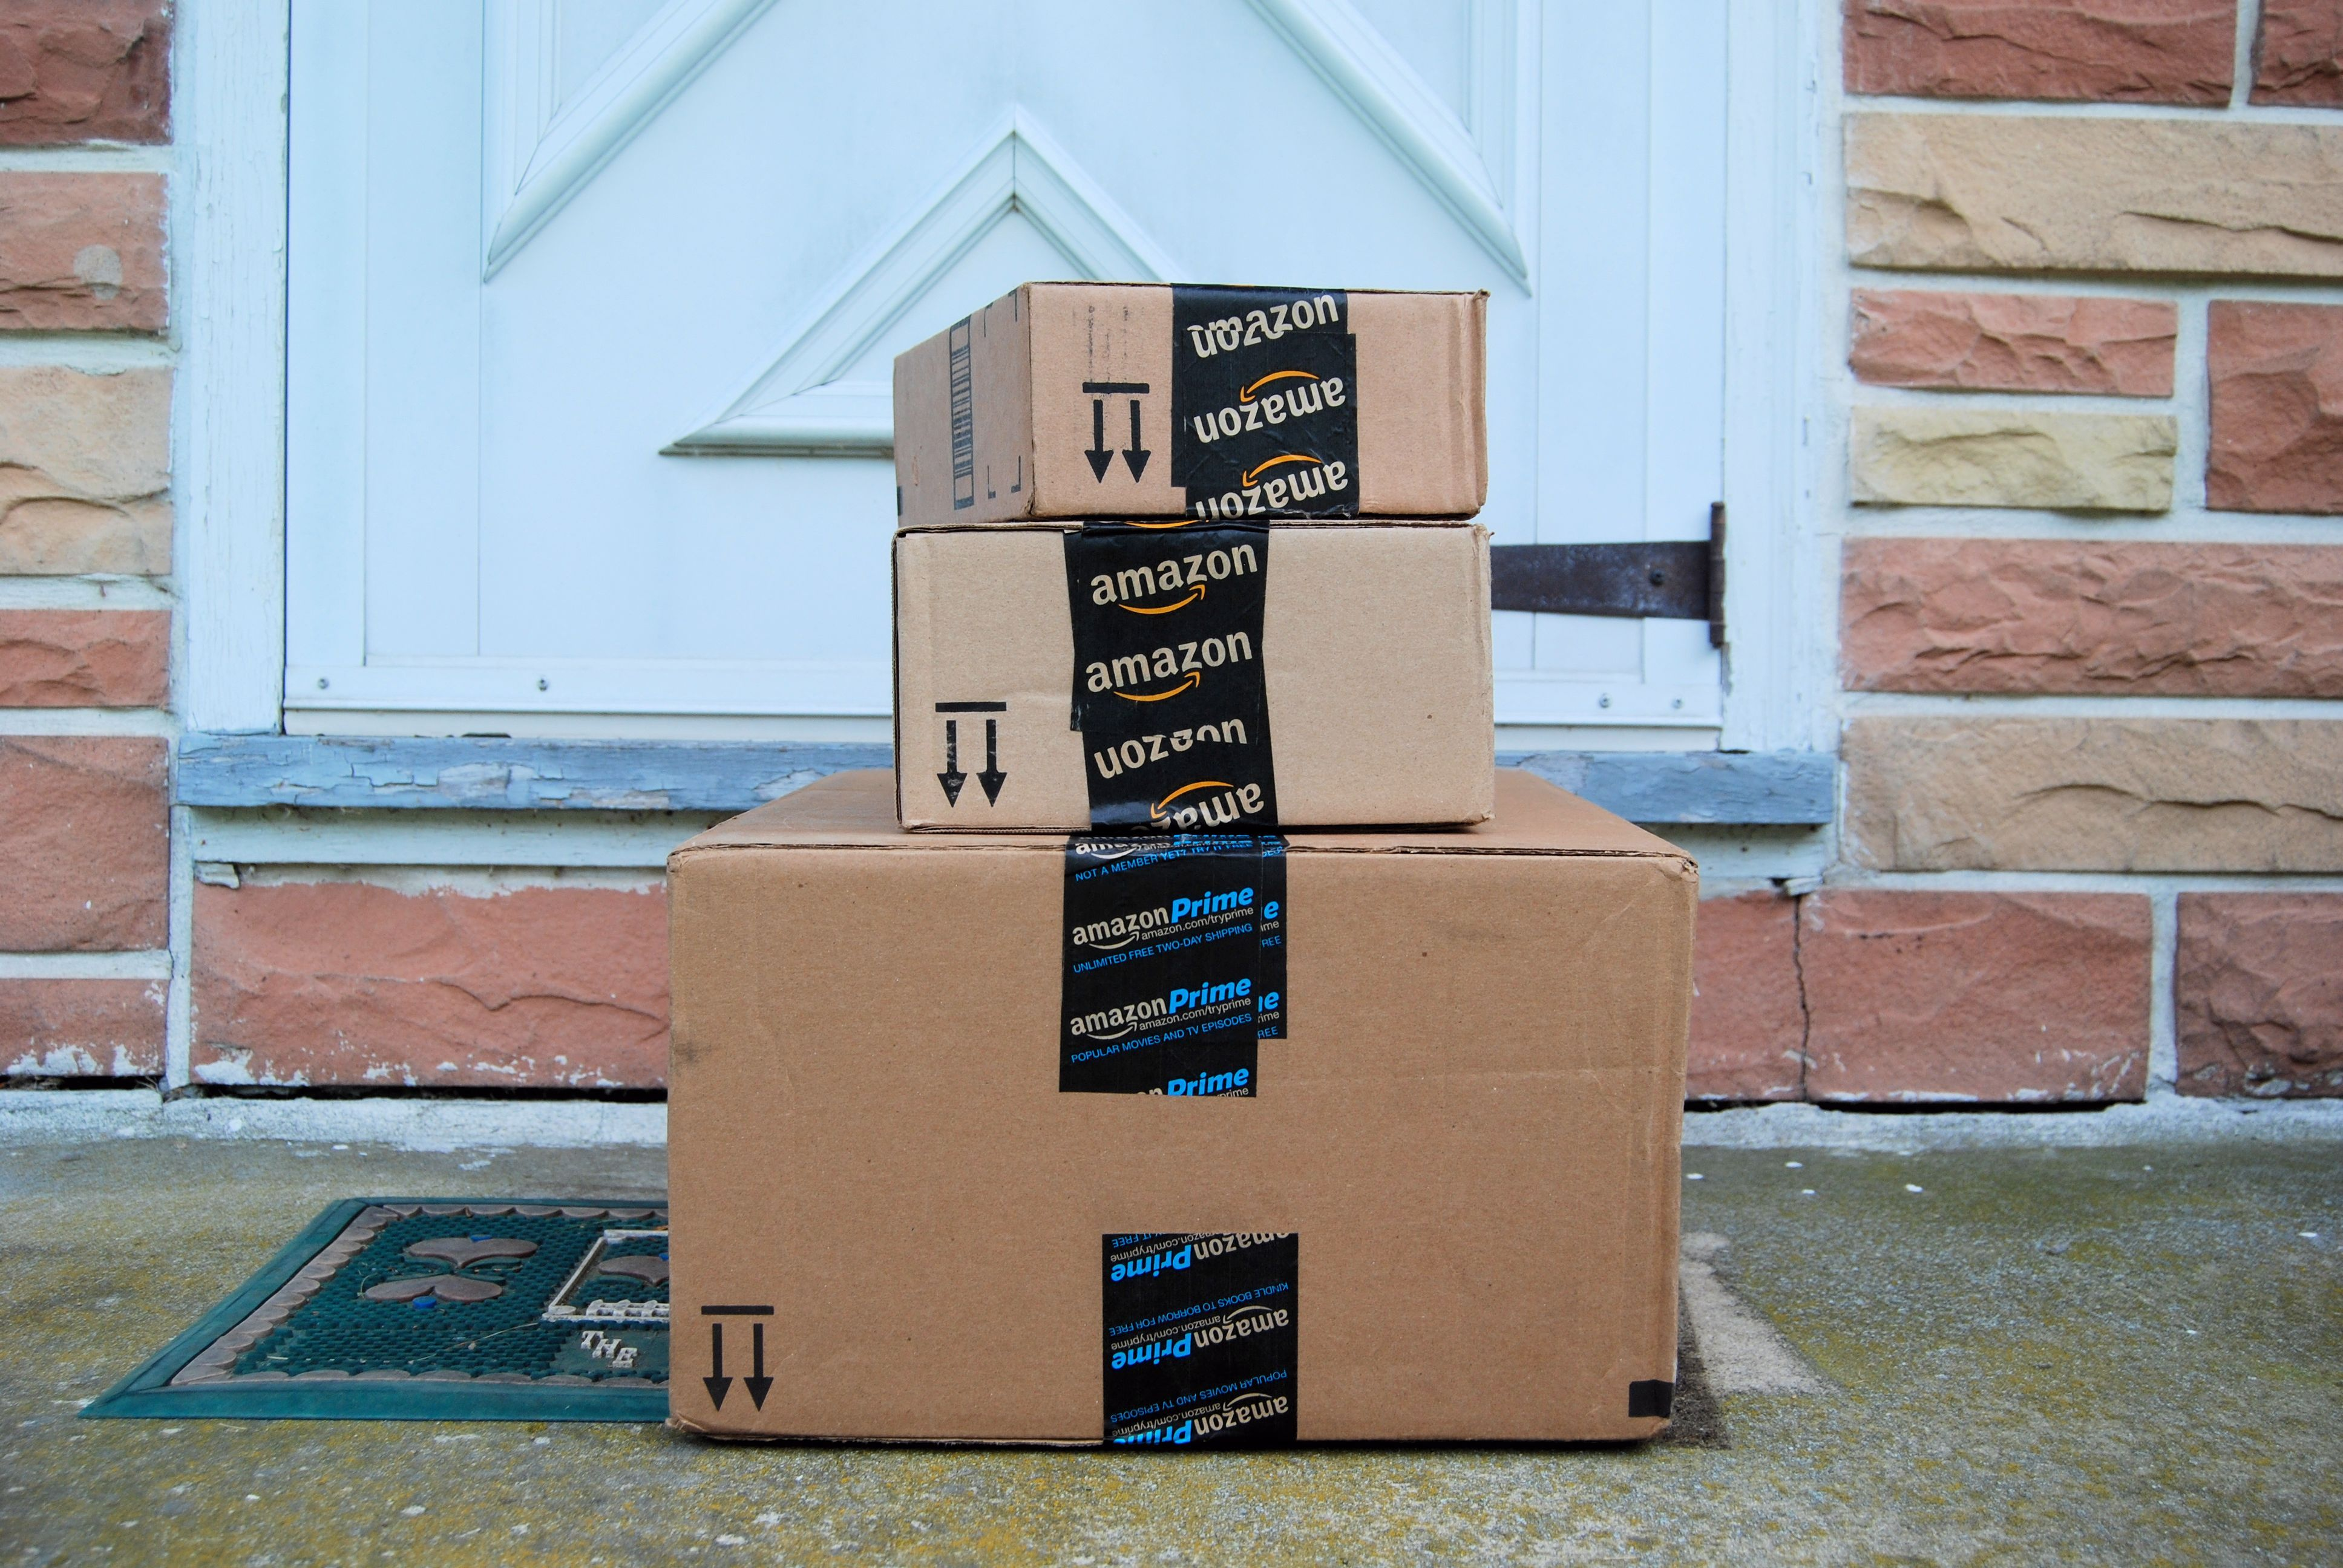 How To Earn $10 Cash Back On Amazon Prime Day - RetailMeNot